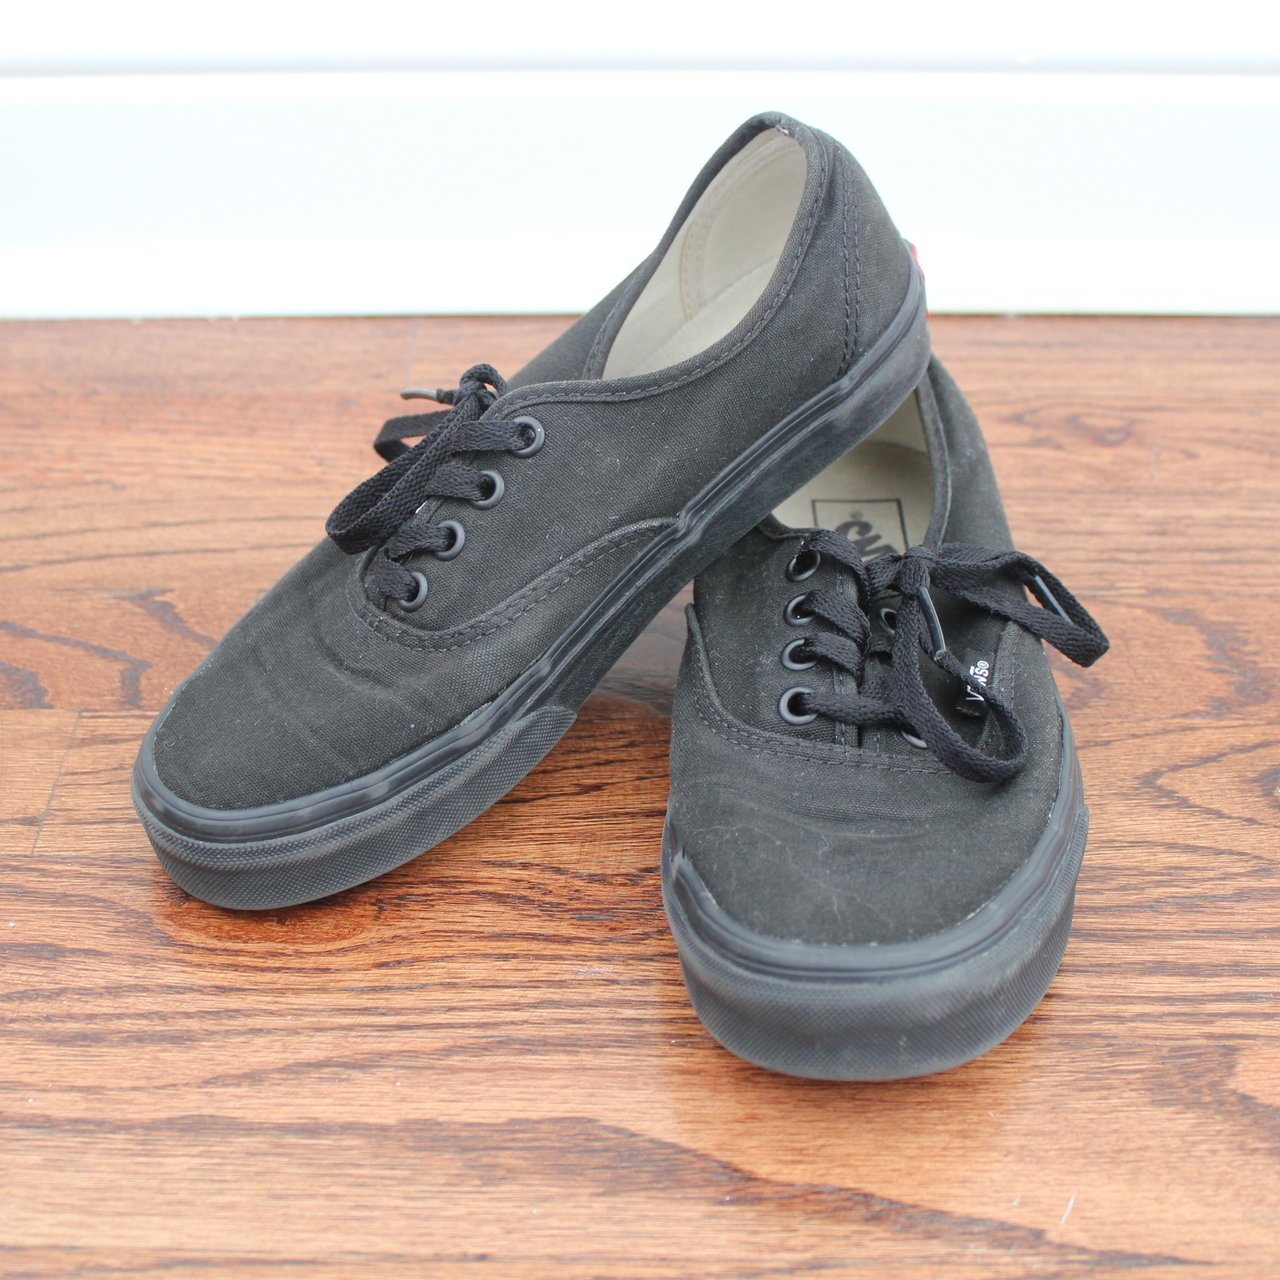 4e20f9ccd2c6 Vans Authentic Skate shoe • all black • women s size 7